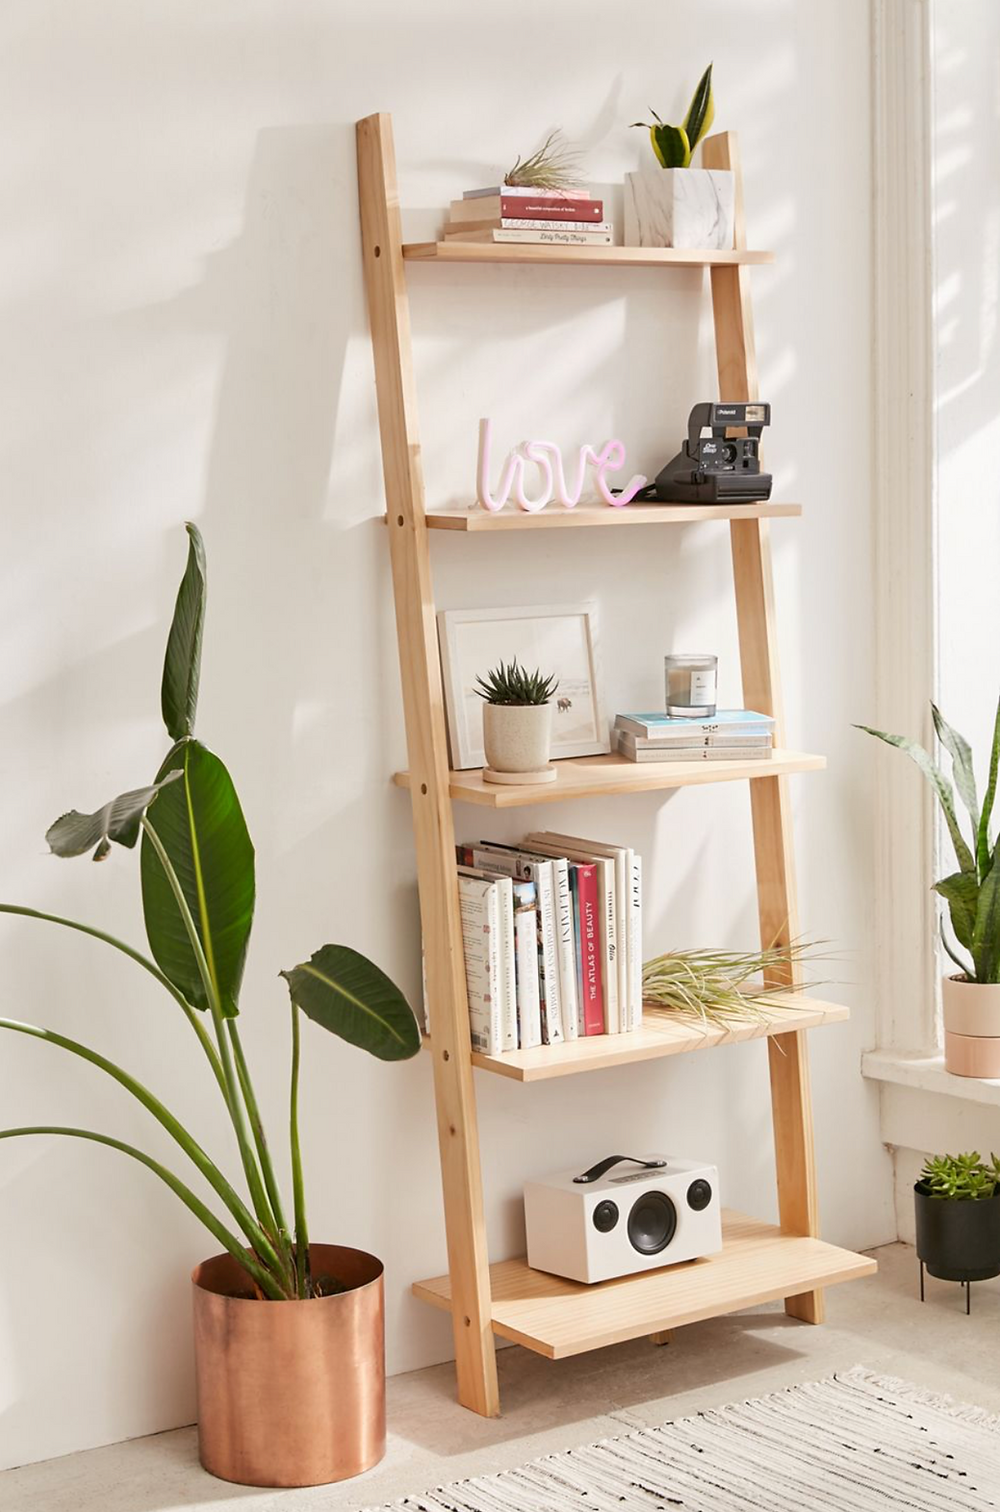 A ladder bookshelf leaning against a white wall styled with books, plants and decorative accessories.